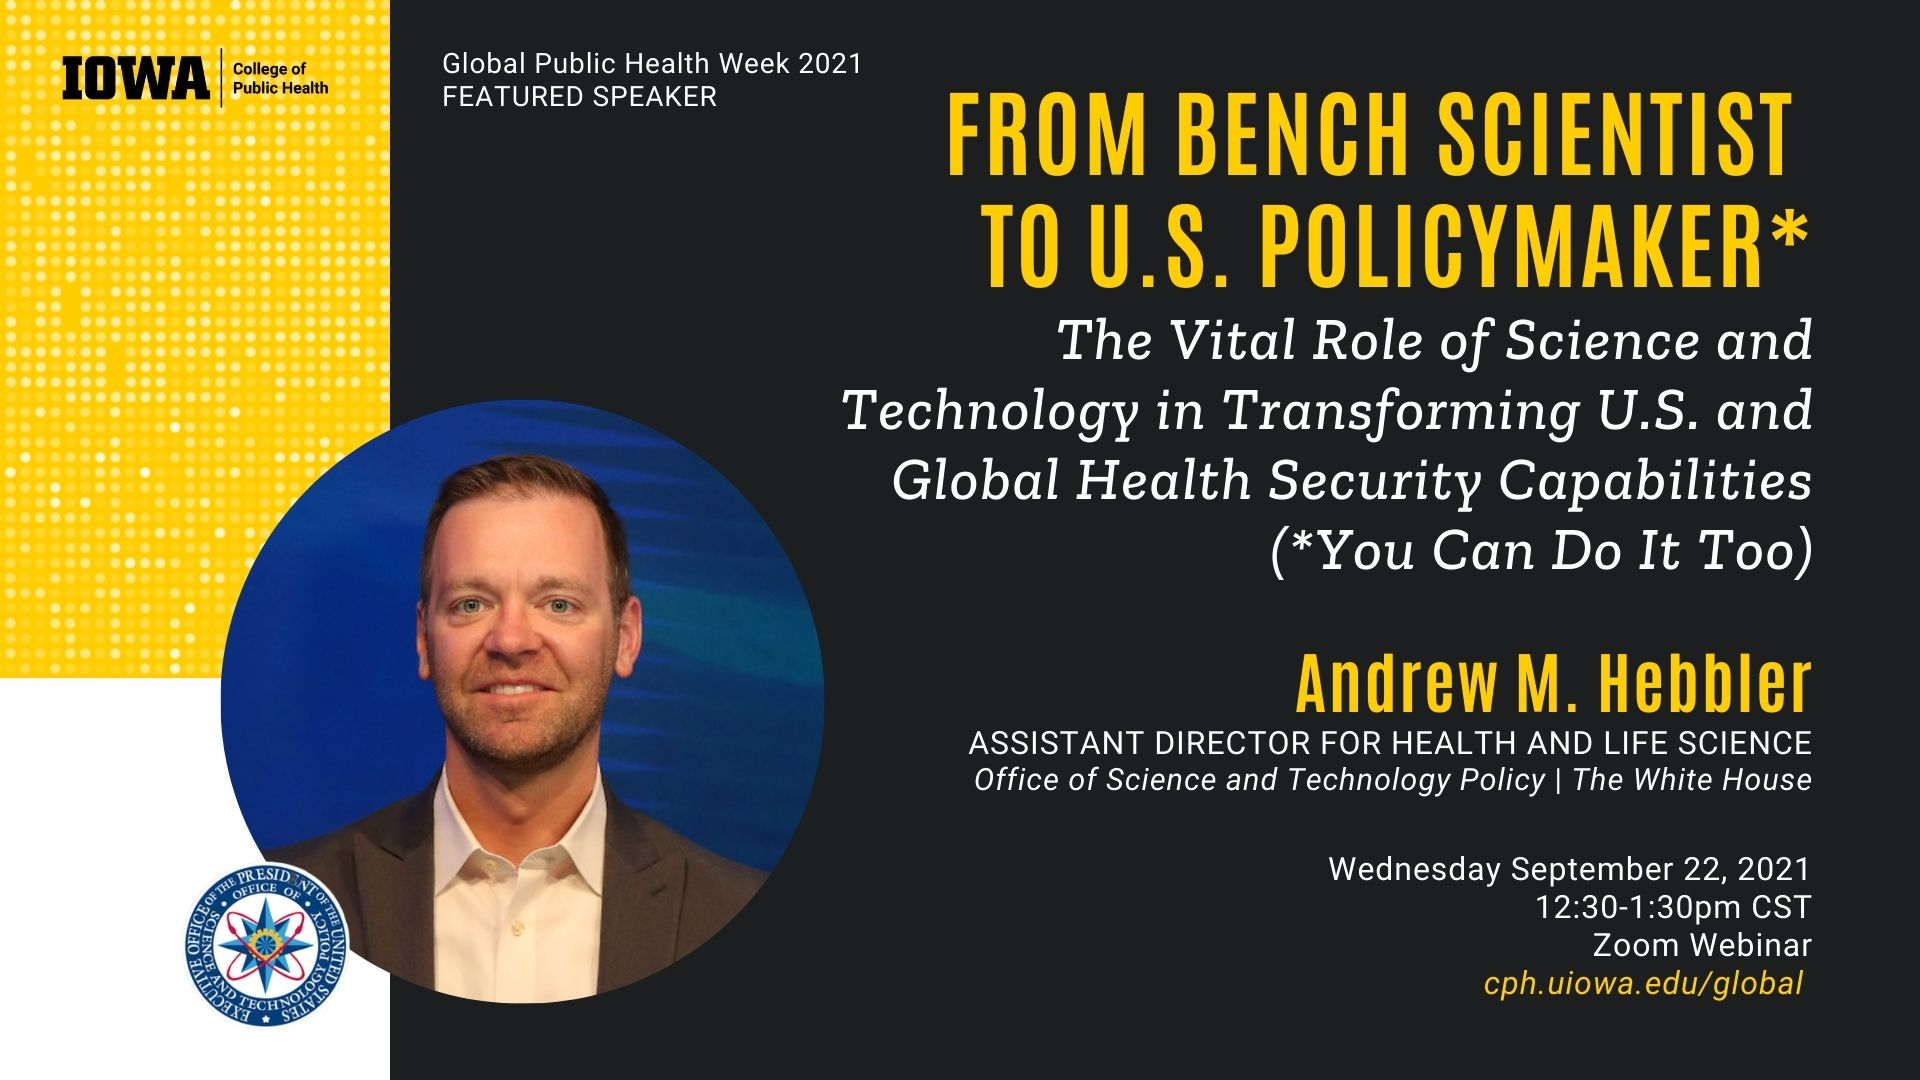 From Bench Scientist to U.S. Policymaker*: the Vital Role of Science and Technology in Transforming U.S. and Global Health Security Capabilities (*You Can Do It Too) promotional image